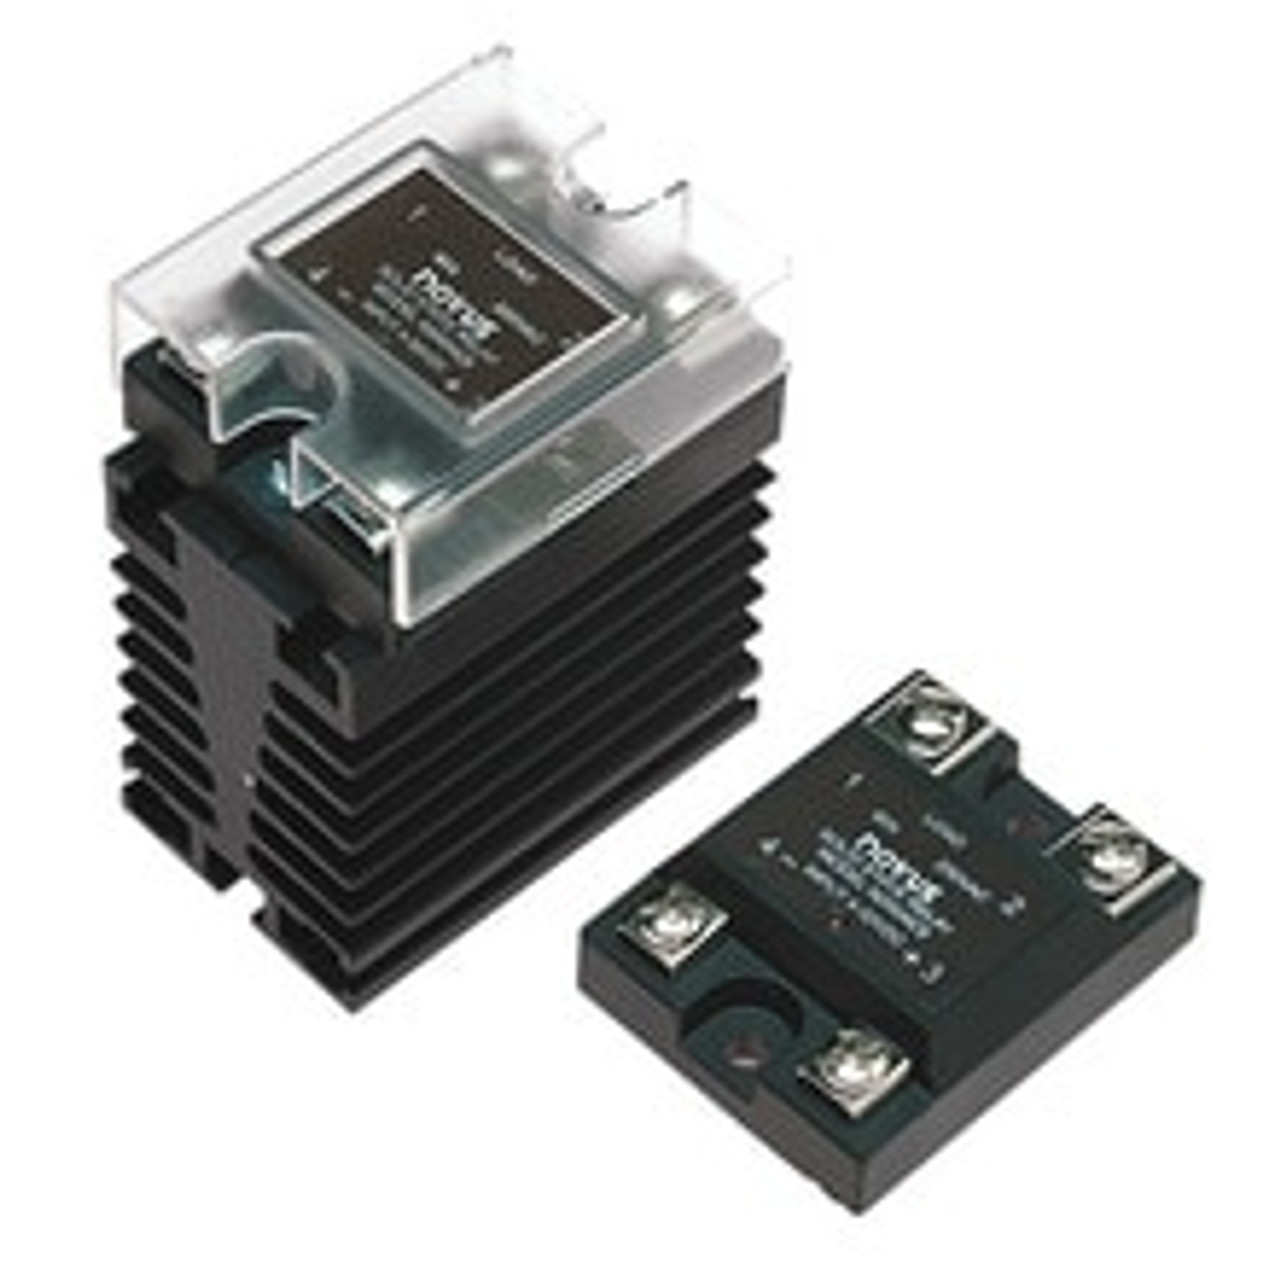 SSR-4840 40A / 480 Vac switching voltage: 4 to 32 Vdc